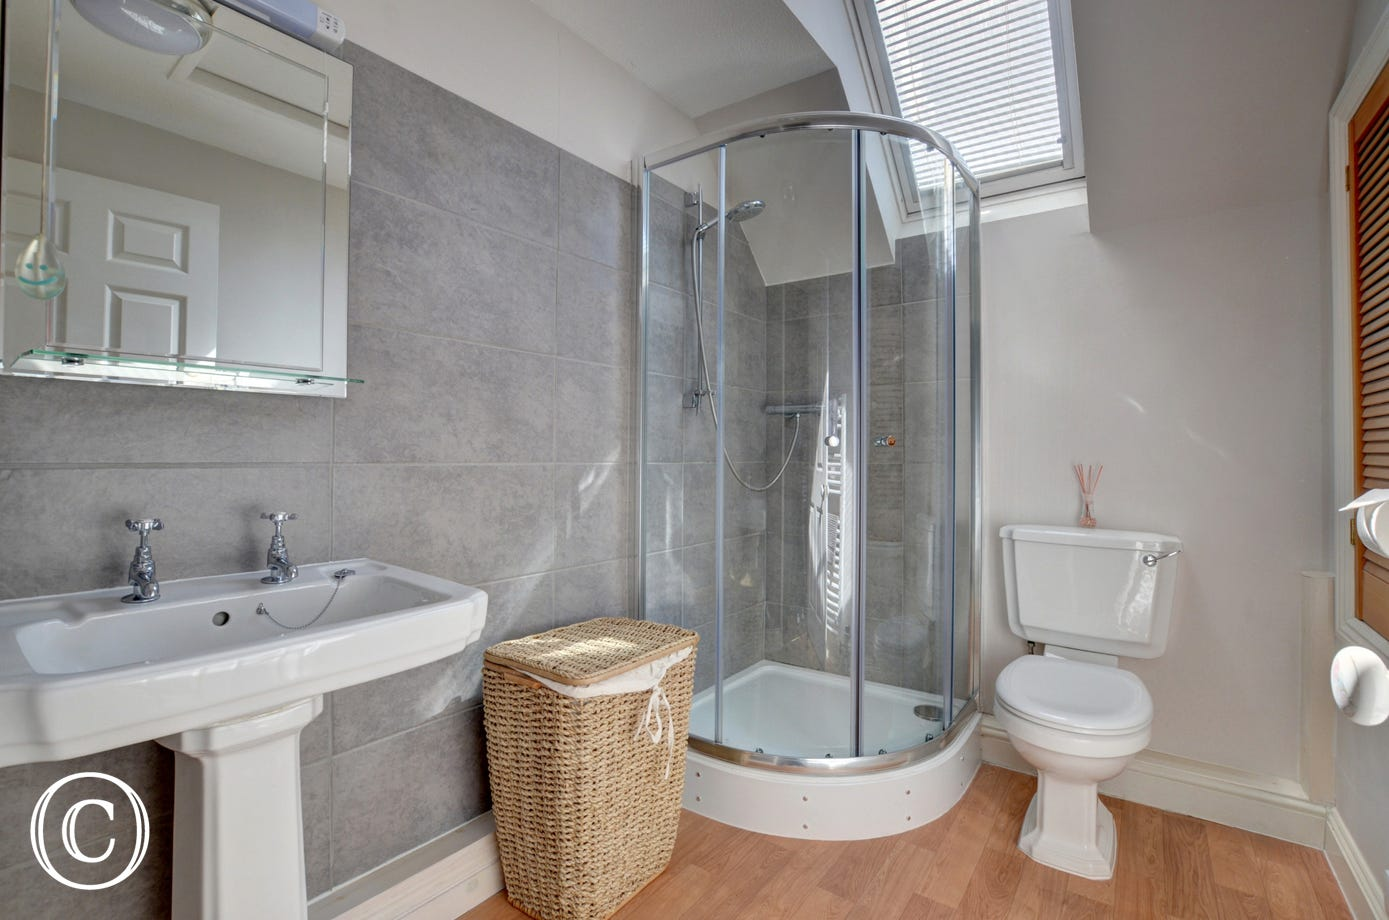 Family bathroom with shower cubical, WC and basin